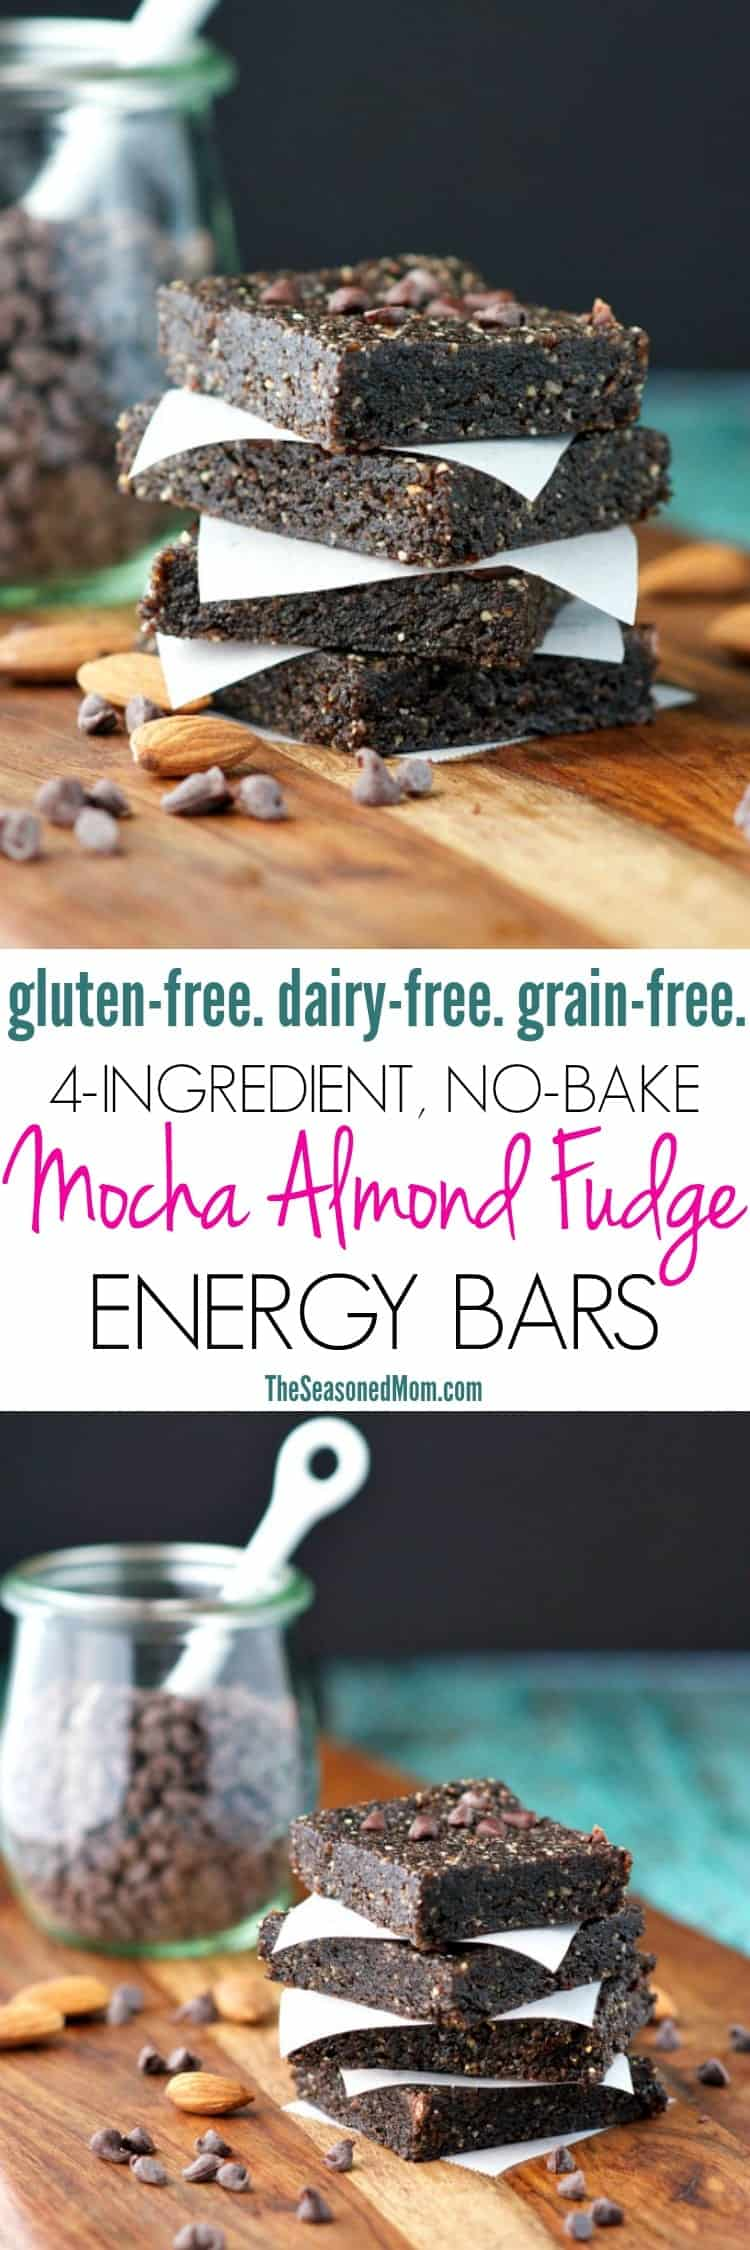 You only need 4 ingredients and 5 minutes for these healthy No-Bake Mocha Almond Fudge Energy Bars! Believe it or not, the rich, chocolatey treats are gluten-free, dairy-free, and grain-free...making them a clean eating snack to grab-and-go for instant fuel when you need it most!